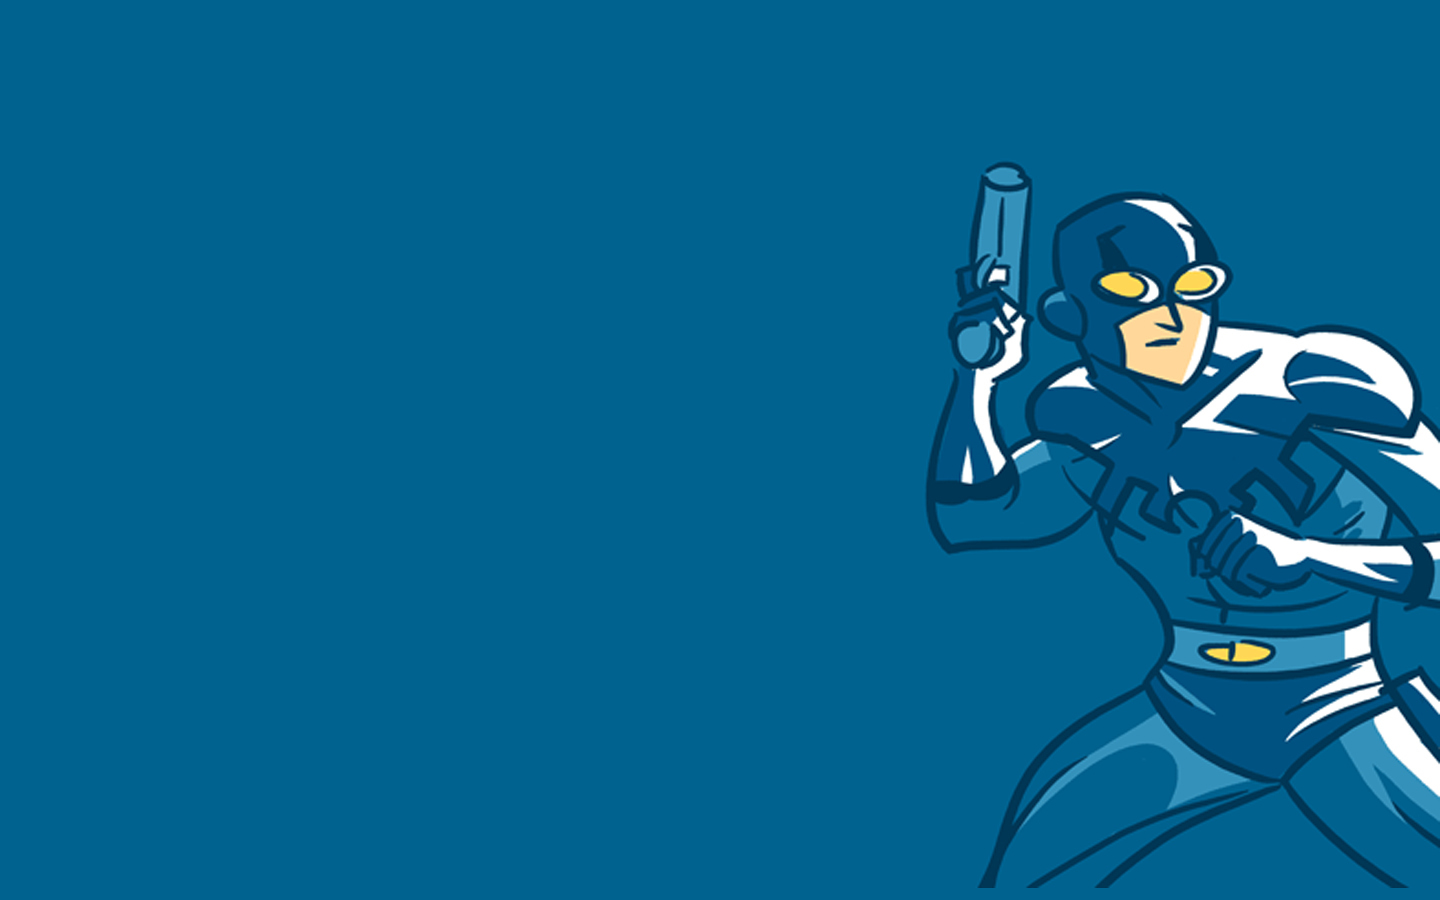 dc comics blue beetle HD Wallpaper